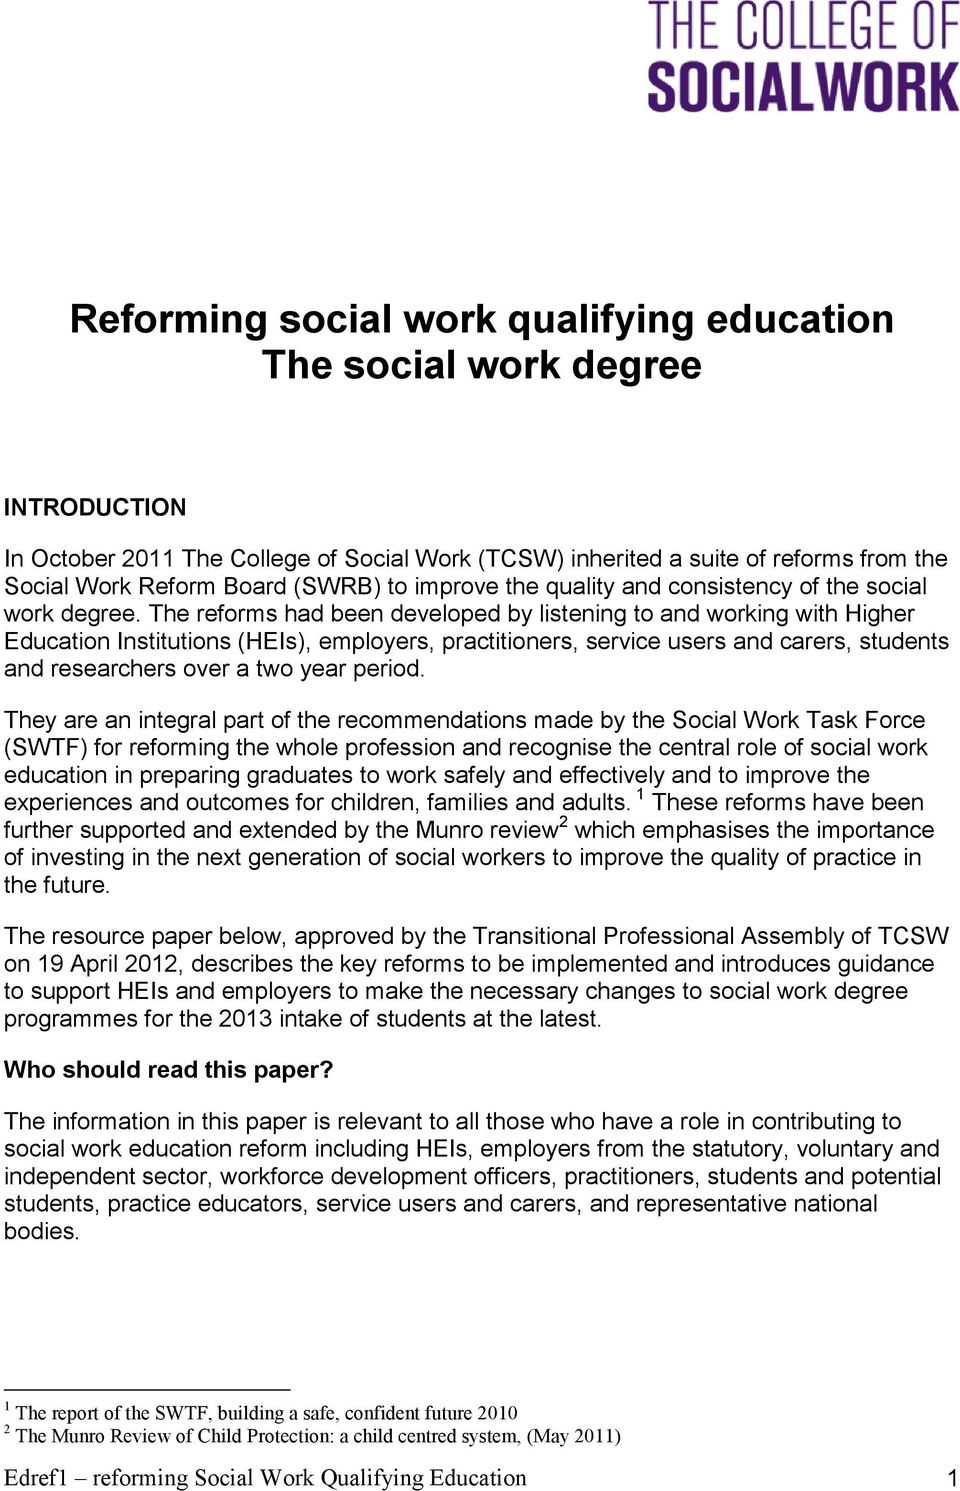 The reforms had been developed by listening to and working with Higher Education Institutions (HEIs), employers, practitioners, service users and carers, students and researchers over a two year